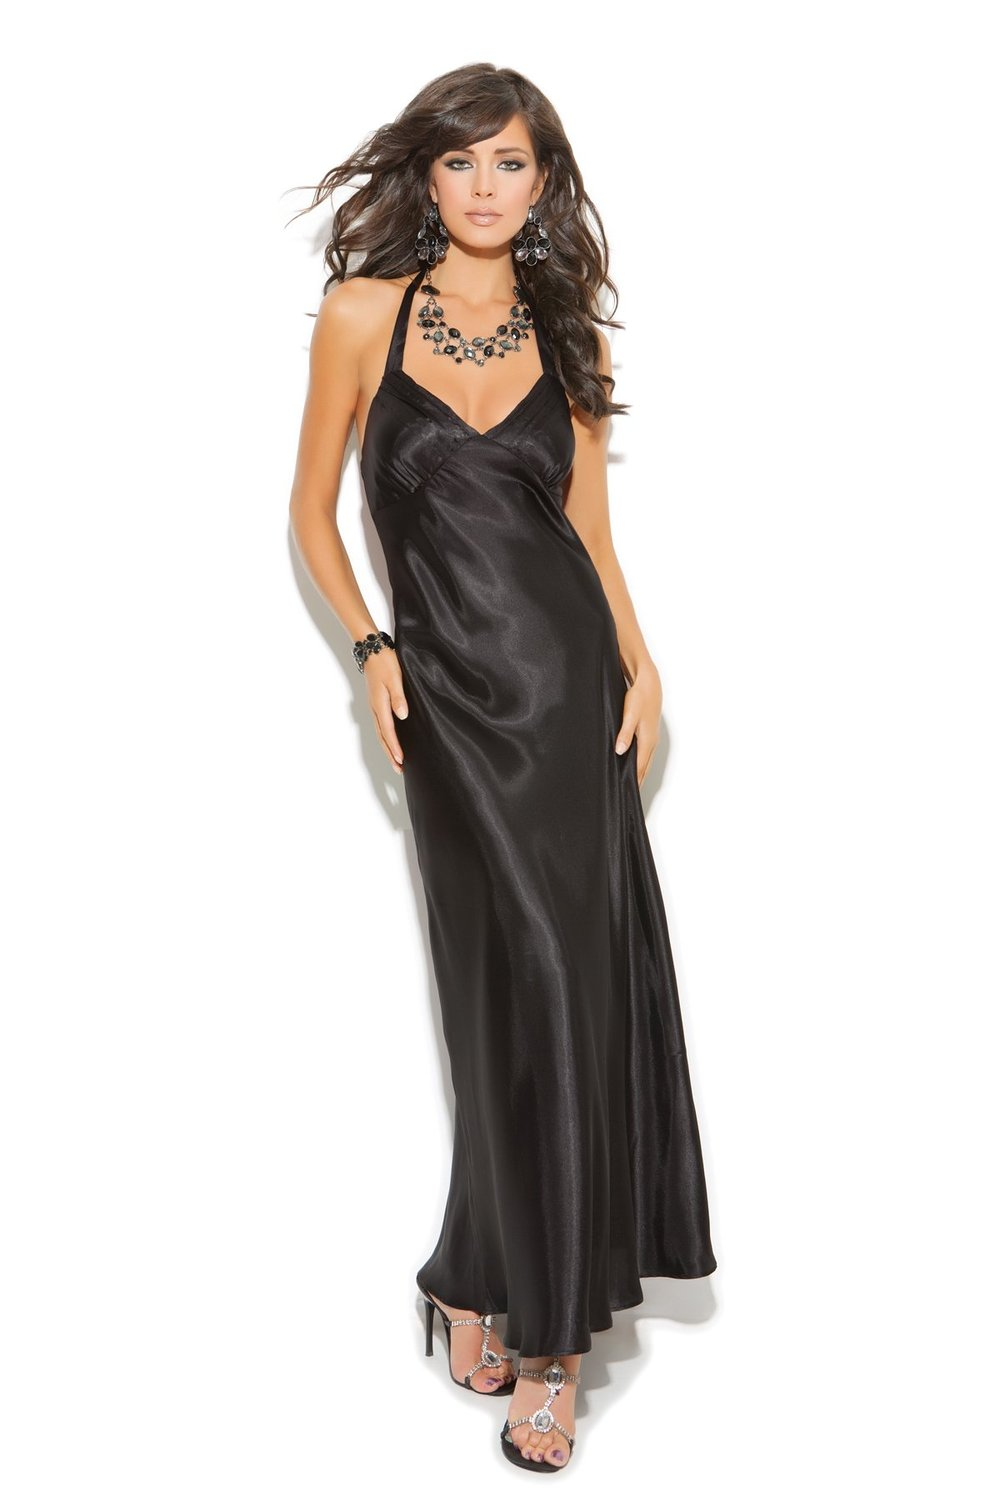 Amazon.com: elegant moment 1919 charmeuse satin halter neck gown.: adult exotic nightgowns: clothing